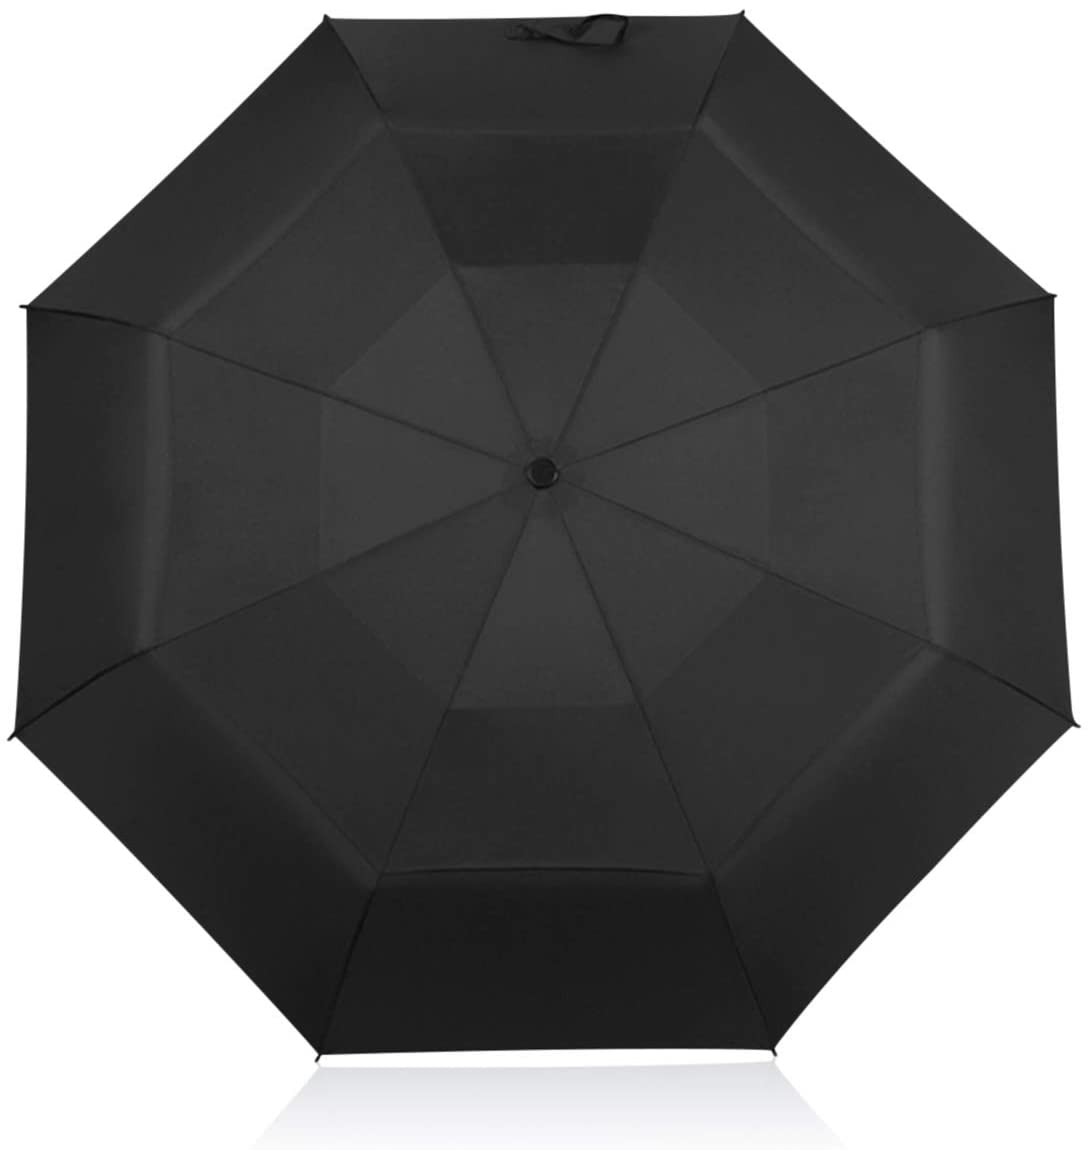 DORRISO Travel Umbrella Windproof Double Canopy Design Portable Automatic Open/Close Womens Mens Rain Umbrellas Black